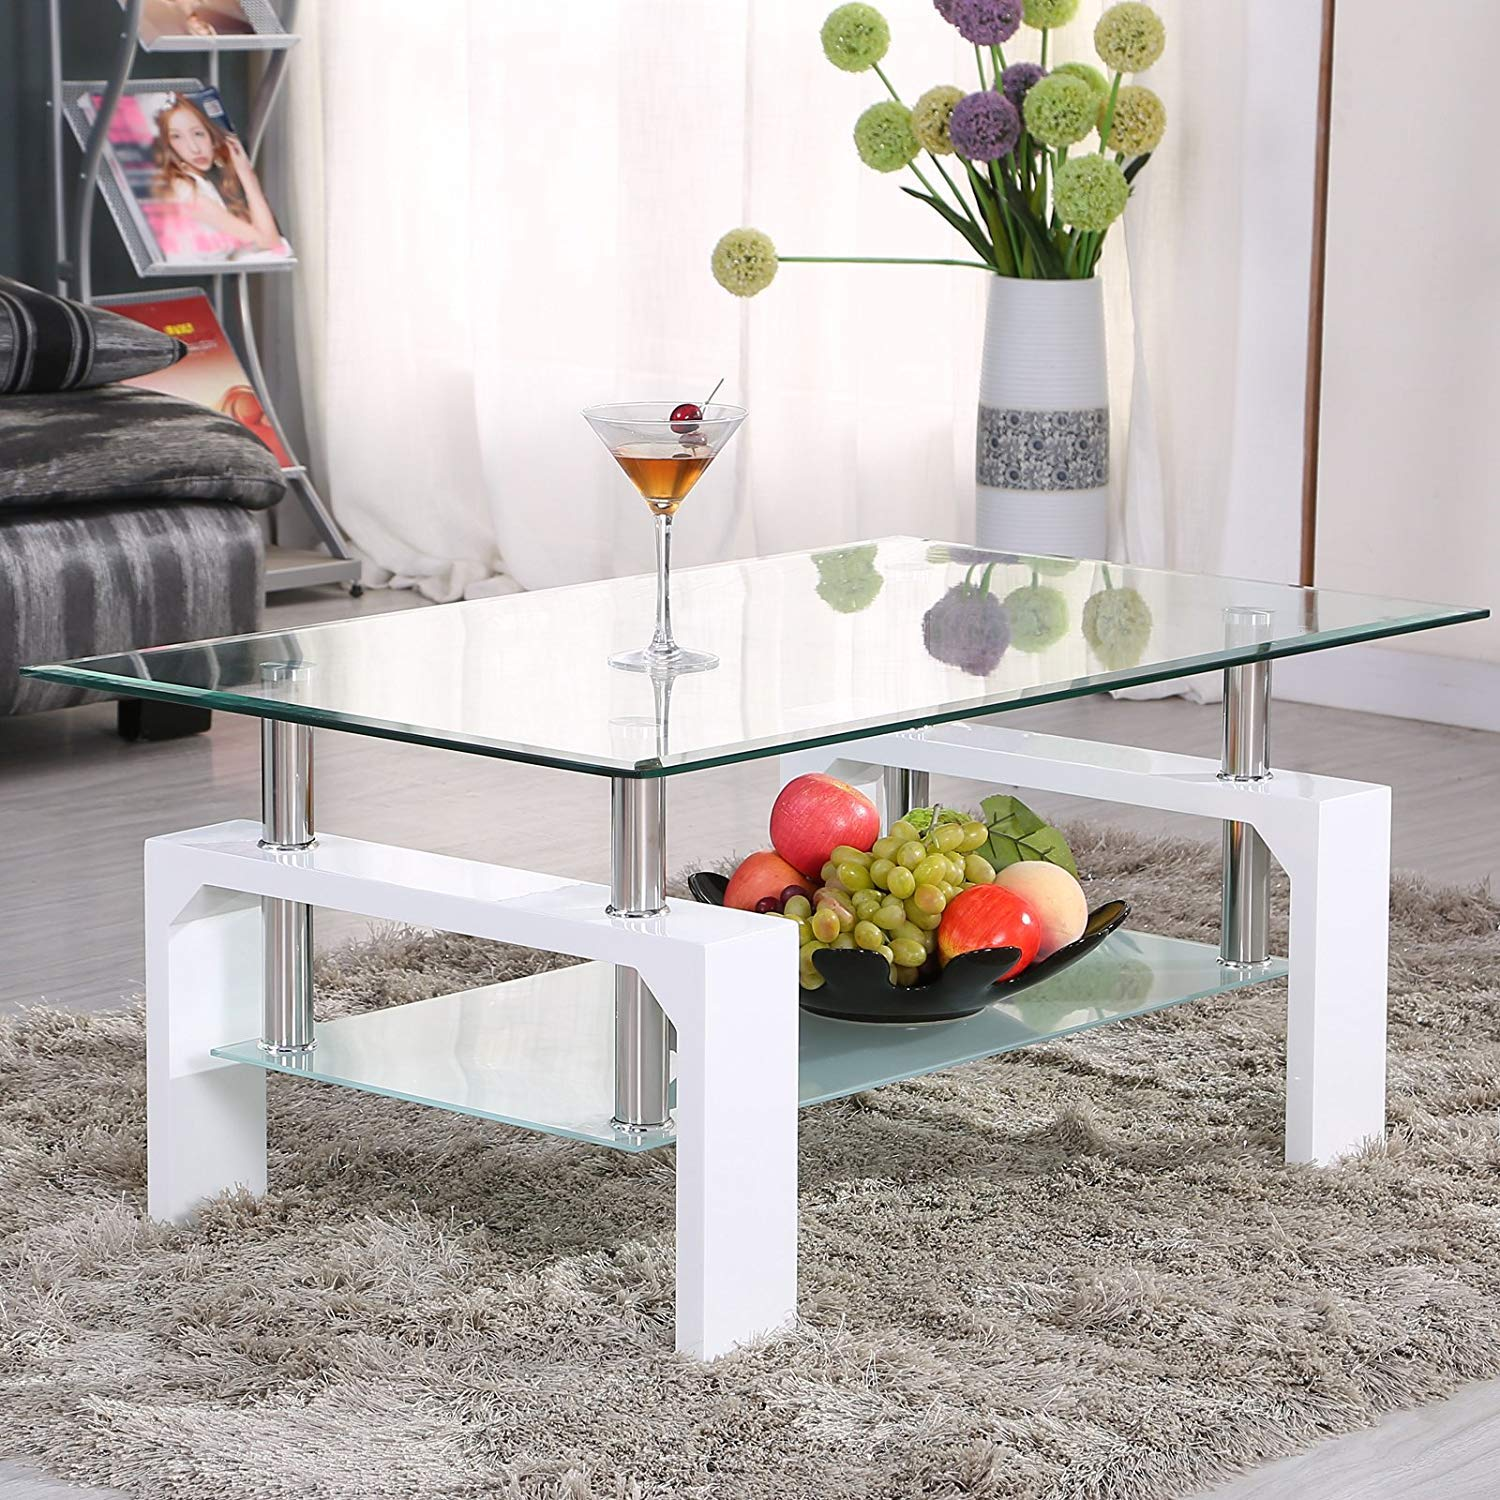 Mecor Rectangle Glass Coffee Table-White Modern Side Coffee Table with Lower Shelf Wooden Legs-Suit for Living Room by Mecor